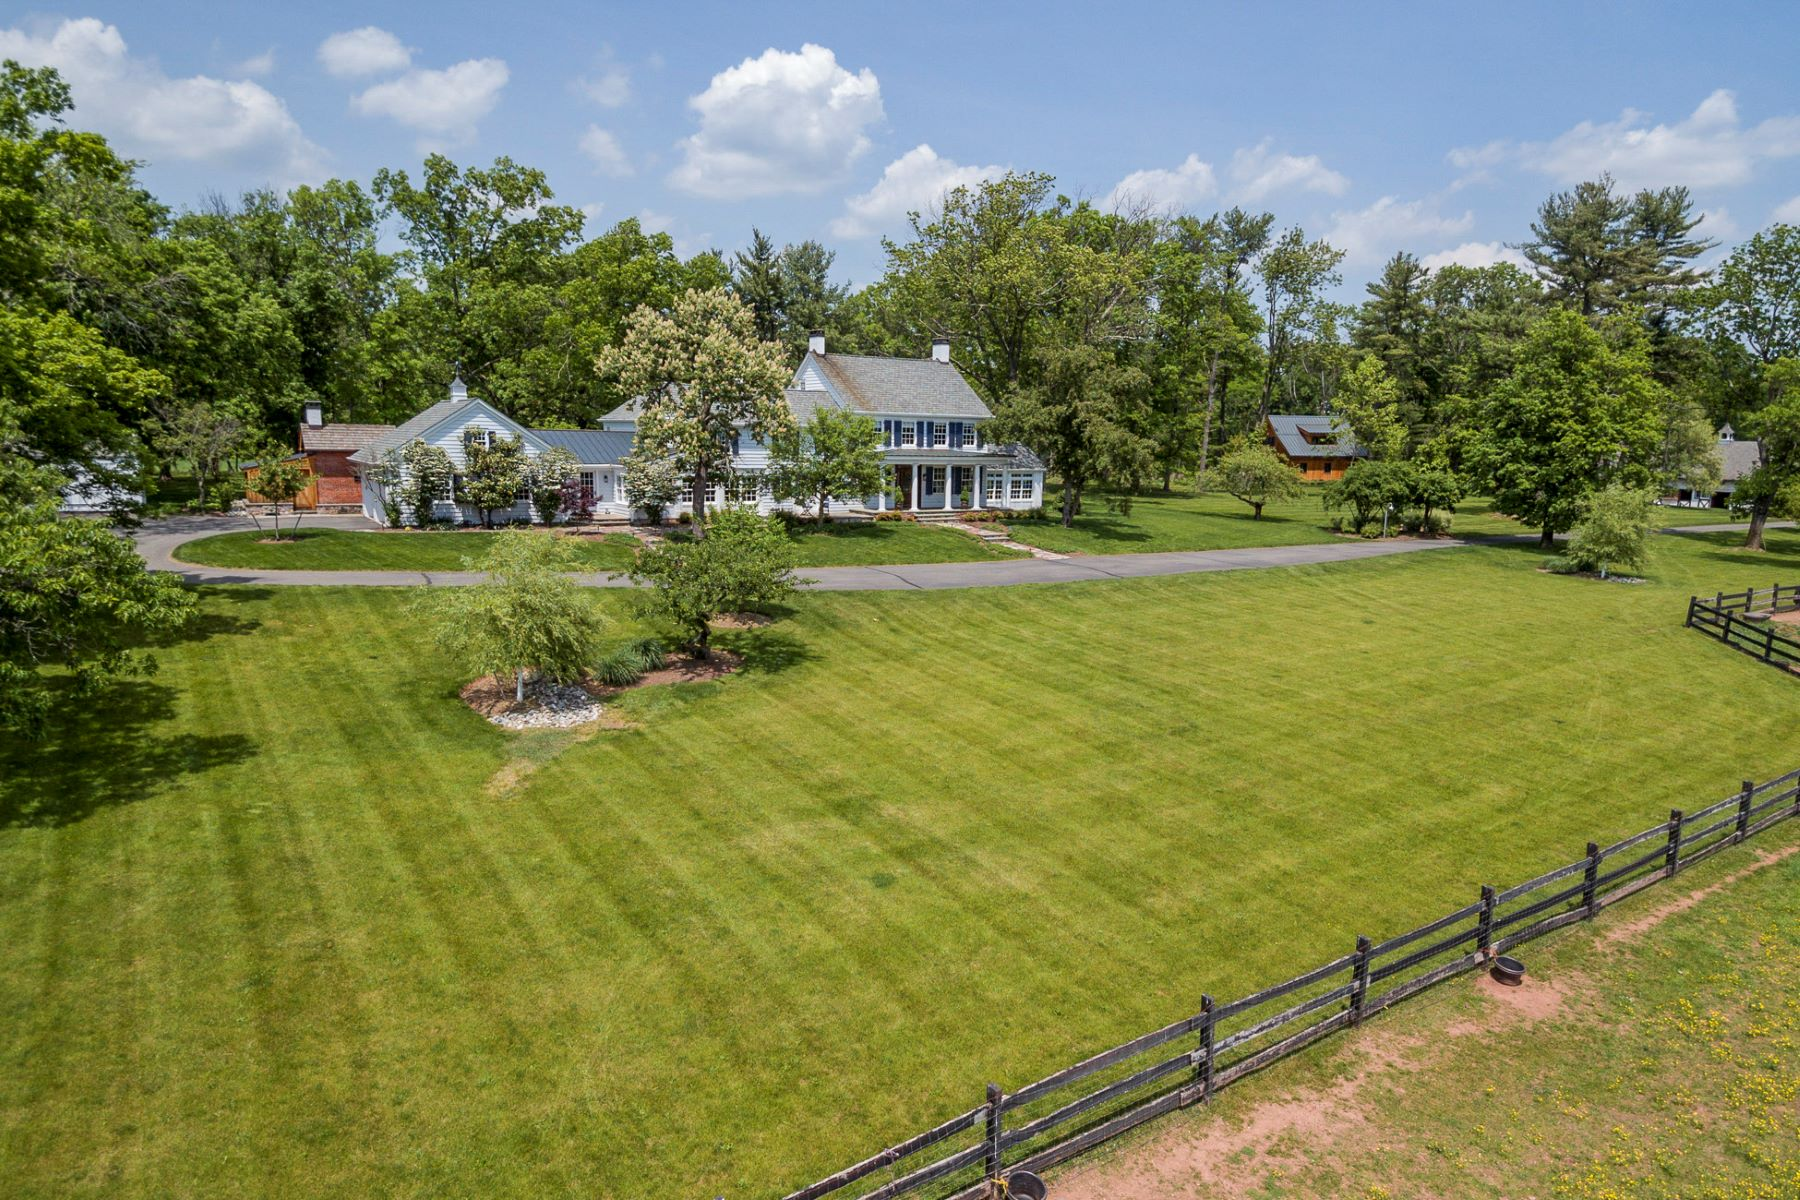 Частный односемейный дом для того Продажа на Historic Farm Reimagined for the Modern Equestrian - Hopewell Township 266 Province Line Road Skillman, 08558 Соединенные Штаты